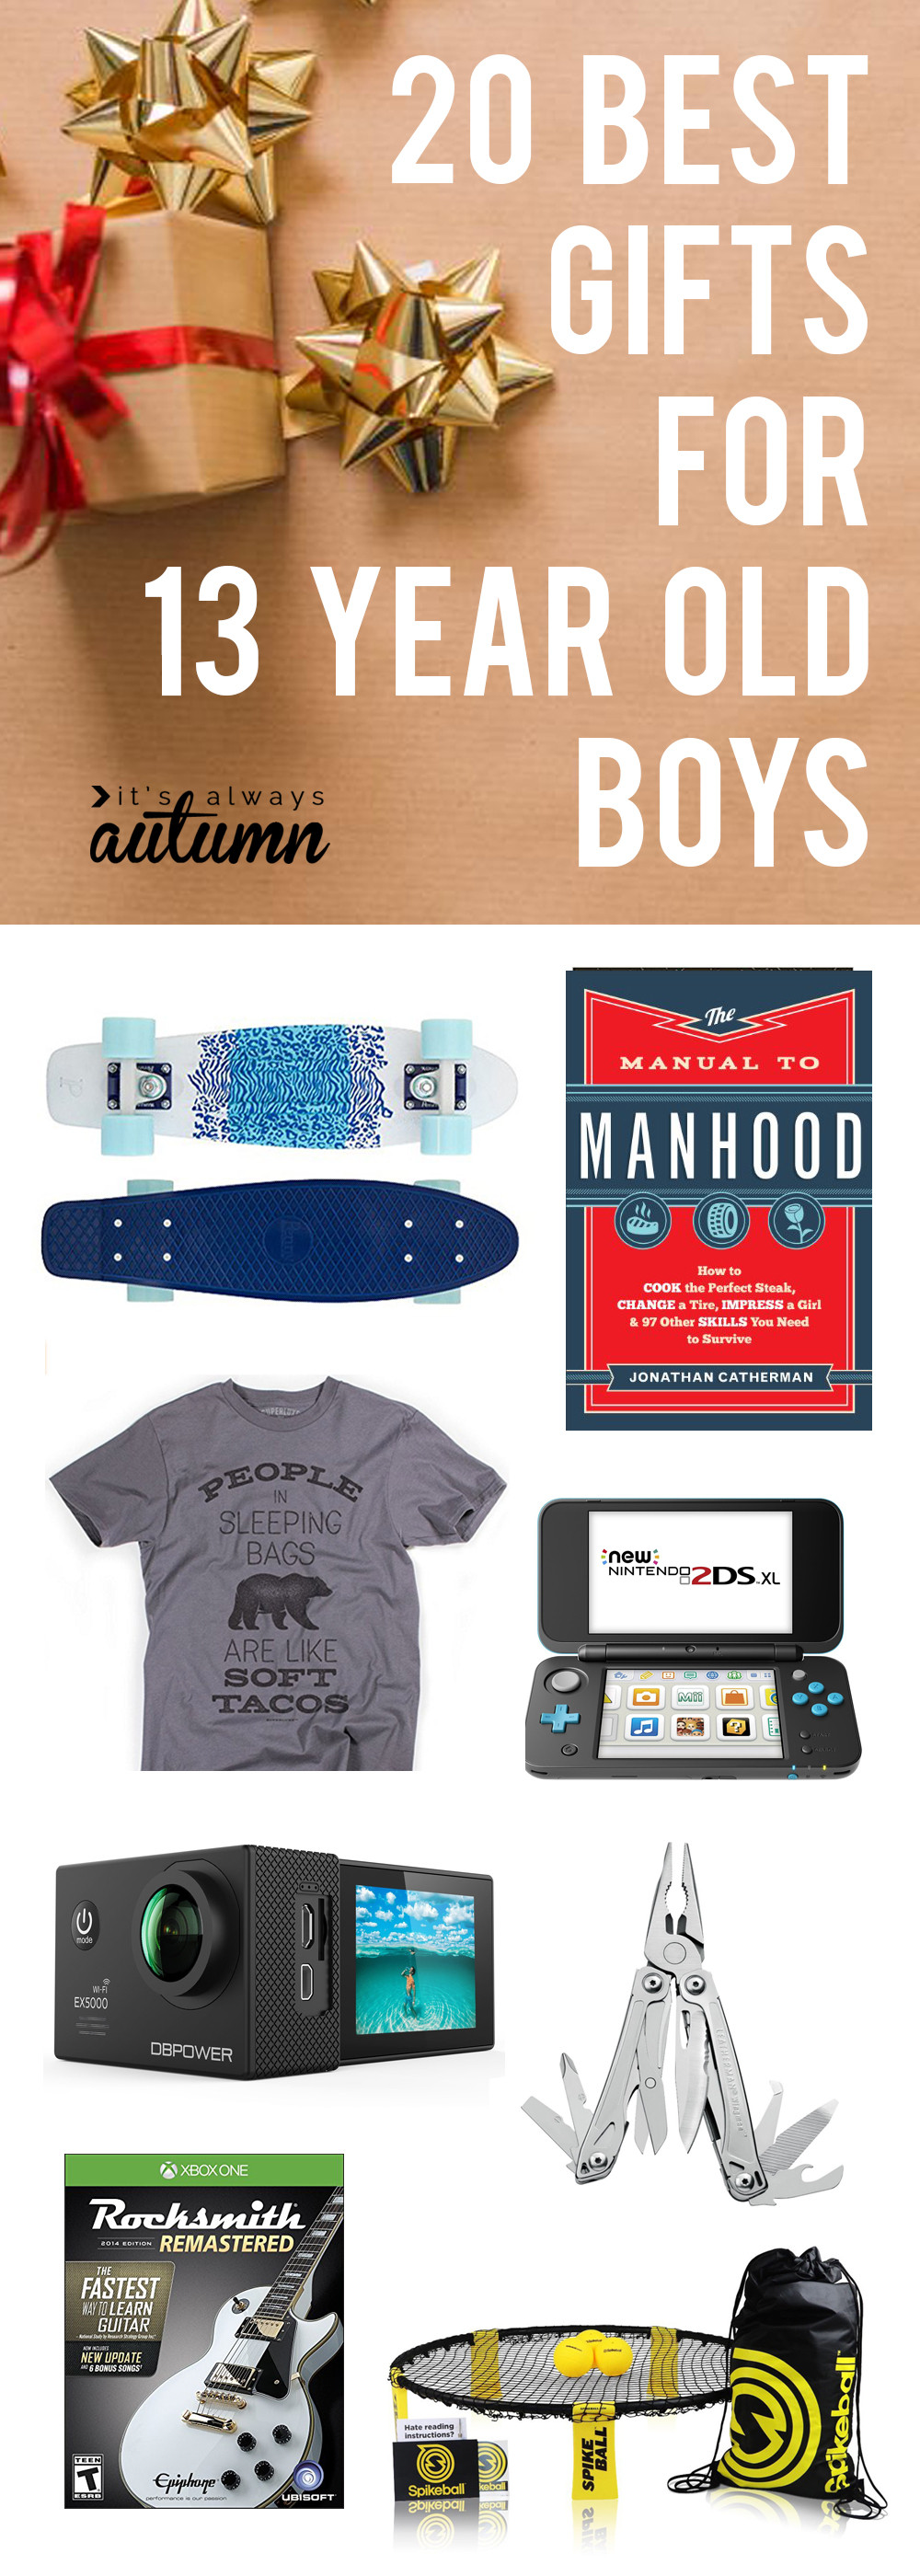 Best ideas about Best Gift Ideas For Boys . Save or Pin best Christmas ts for 13 year old boys It s Always Autumn Now.